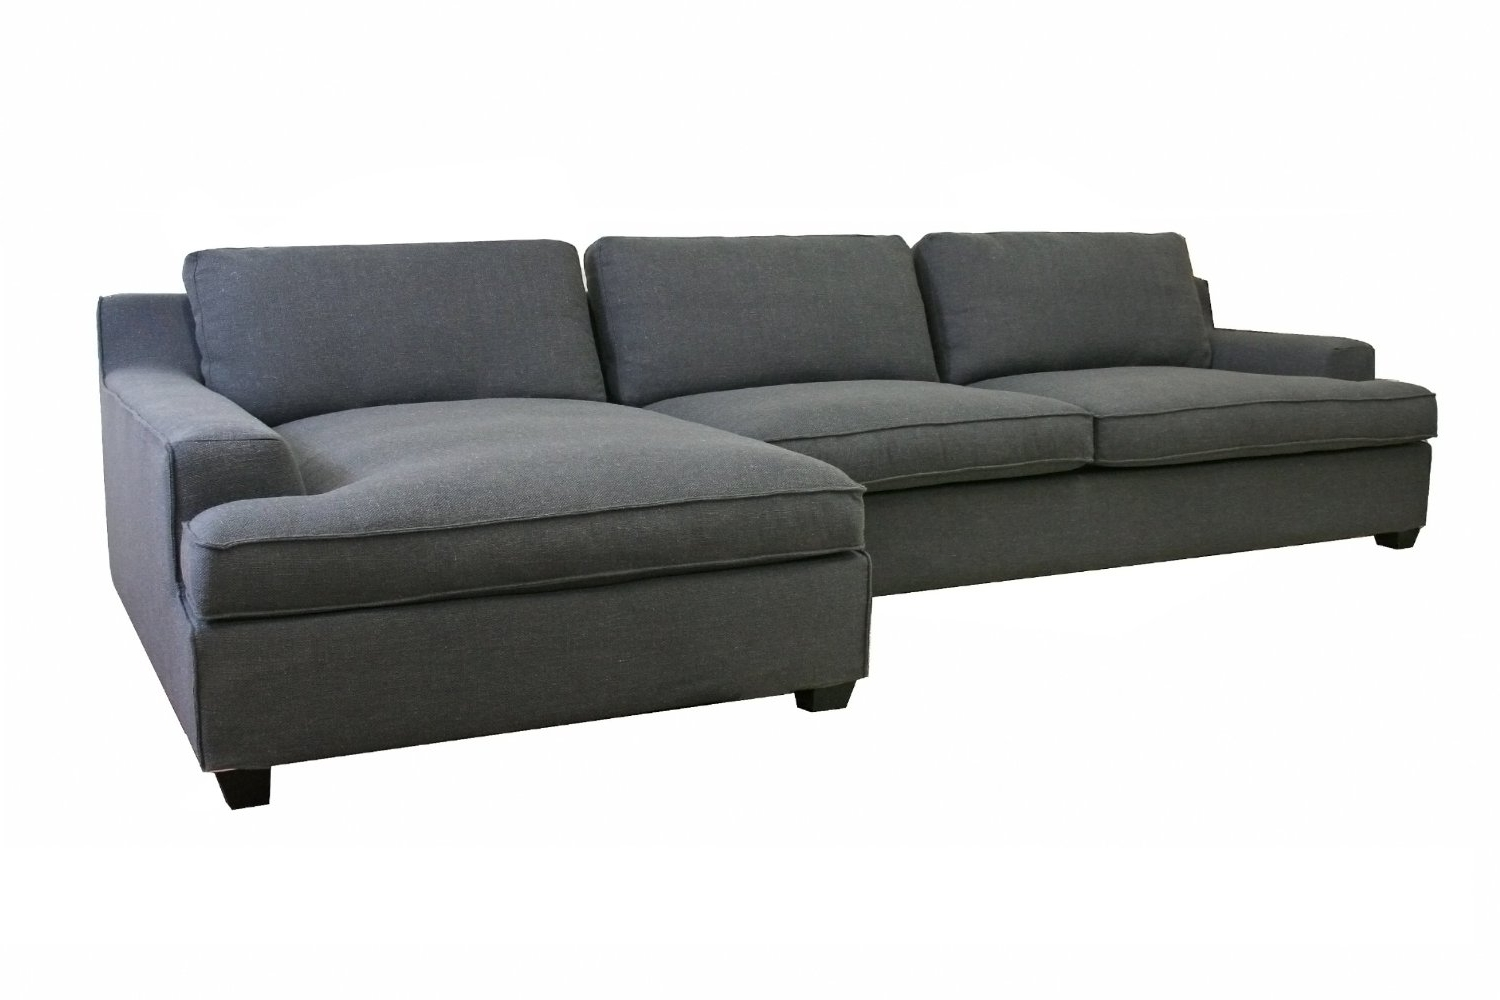 Current Couches With Chaise Lounge Intended For Awesome Couch With Chaise Lounge 81 On Sofas And Couches Ideas (View 4 of 15)